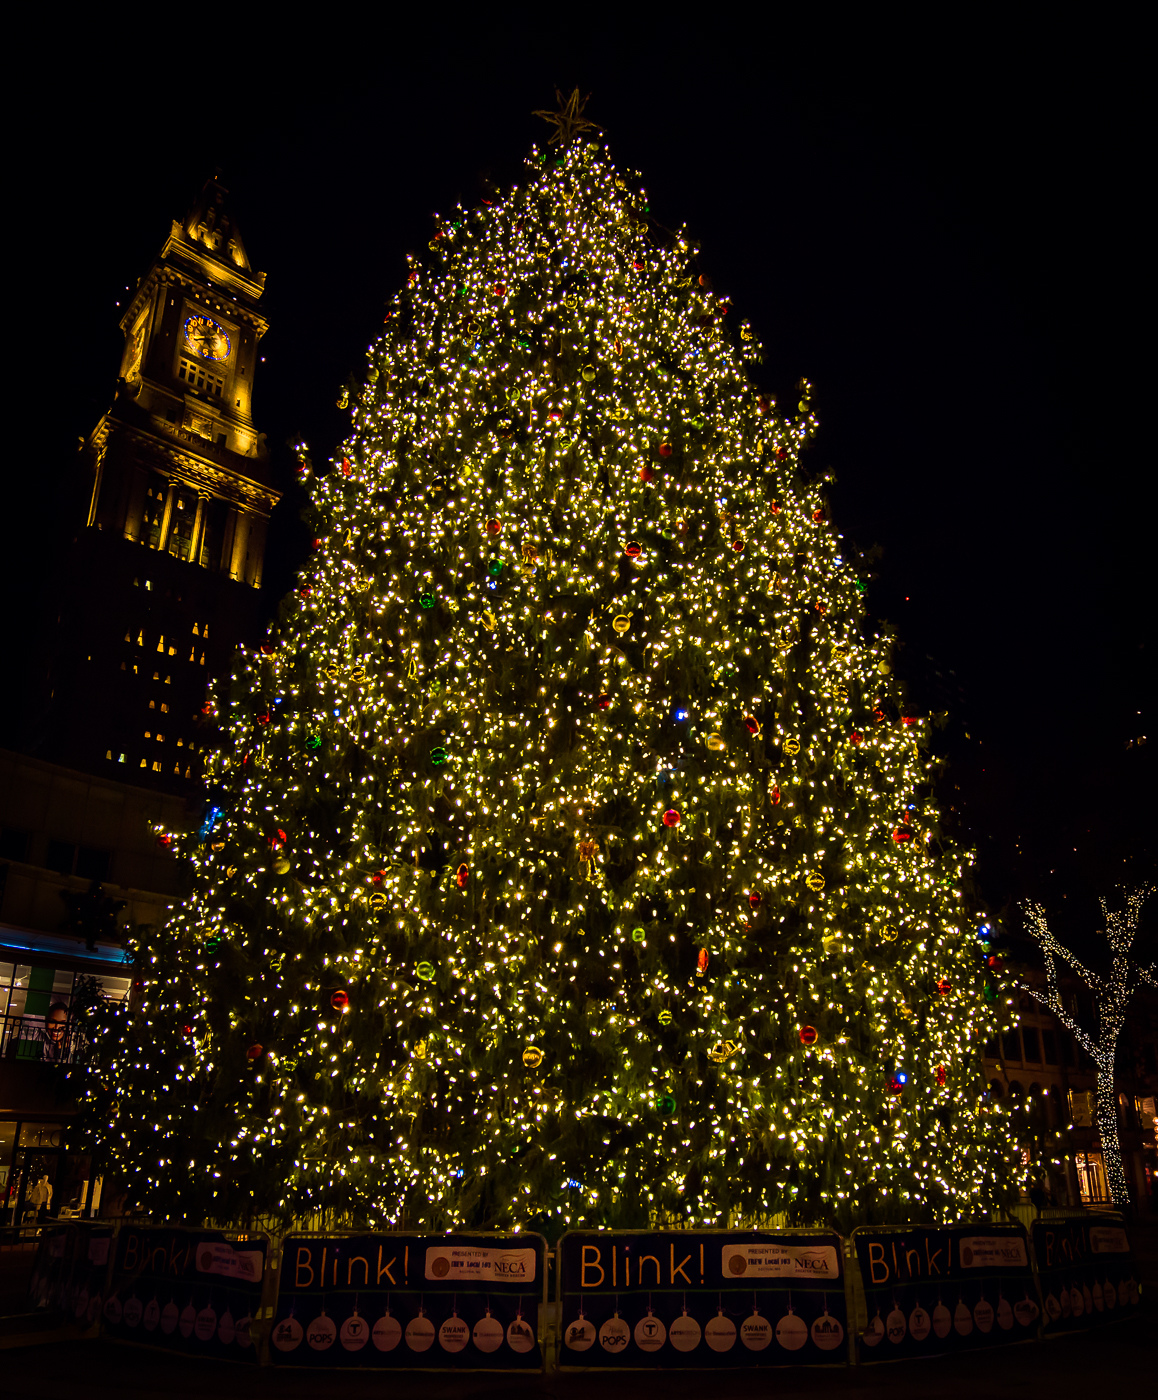 Boston 39 s first and tallest tree lighting at faneuil hall for Christmas tree light lamps